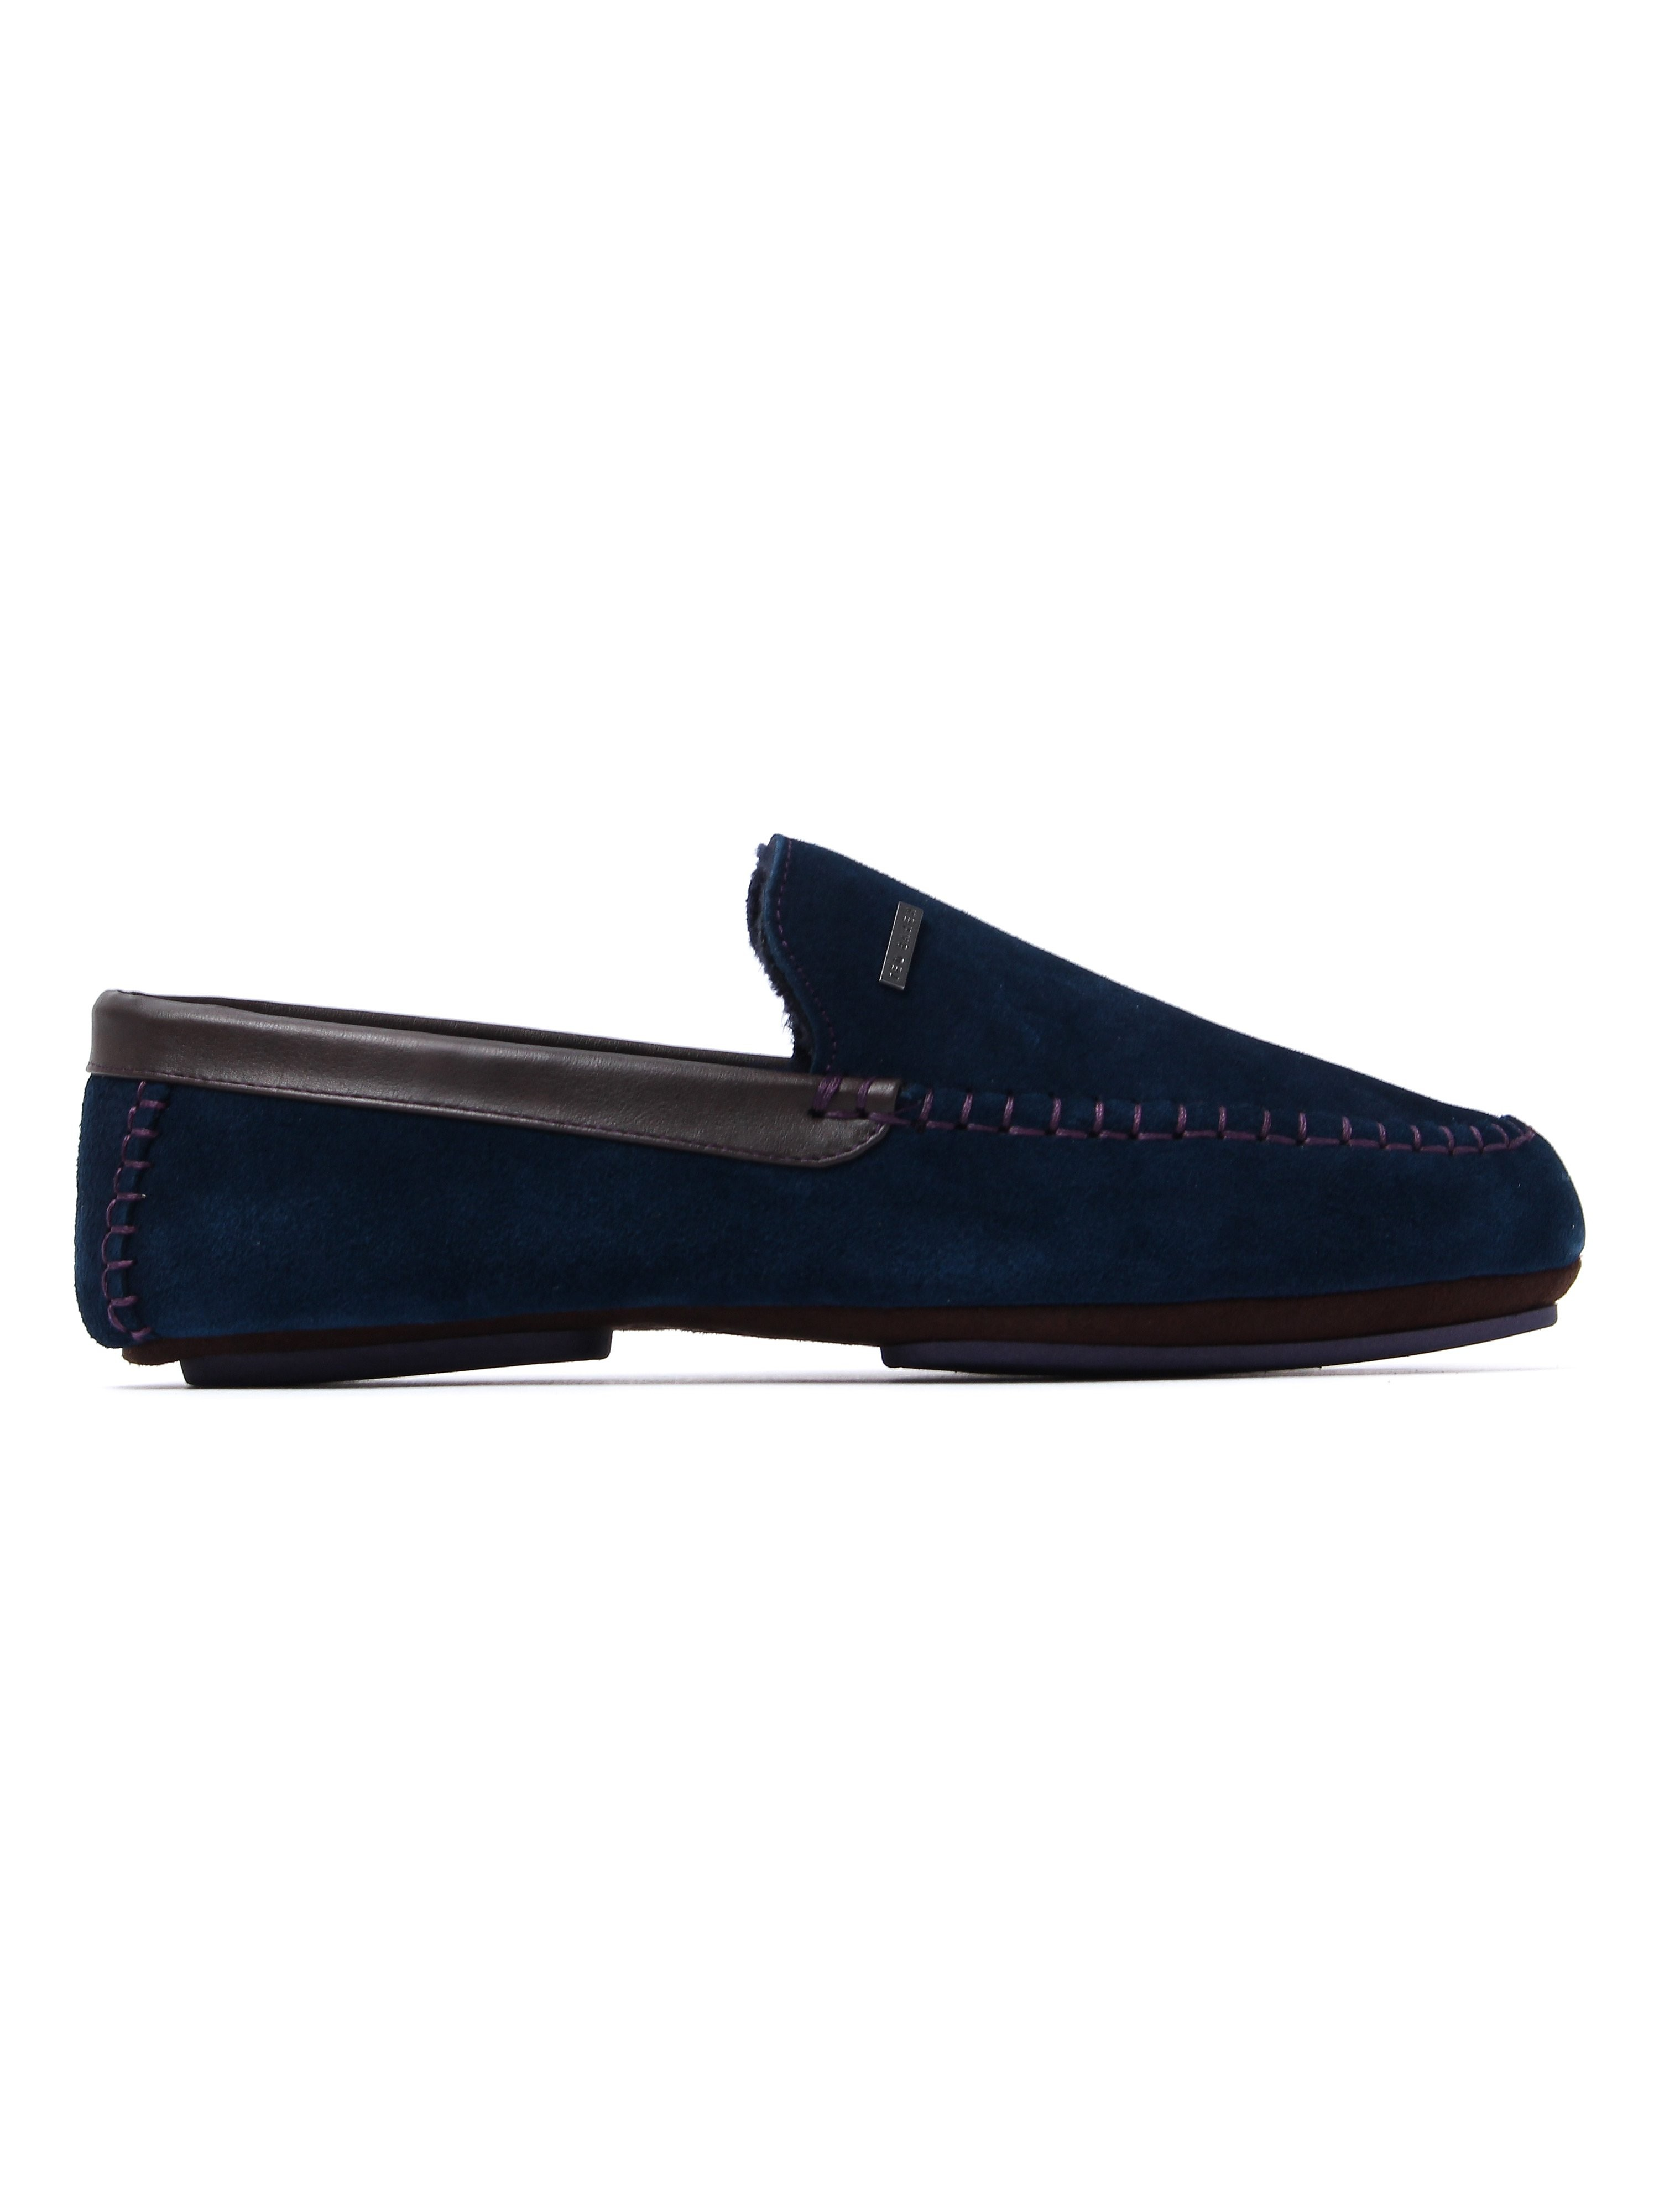 Ted Baker Men's Moriss 2 Slippers - Dark Blue Suede